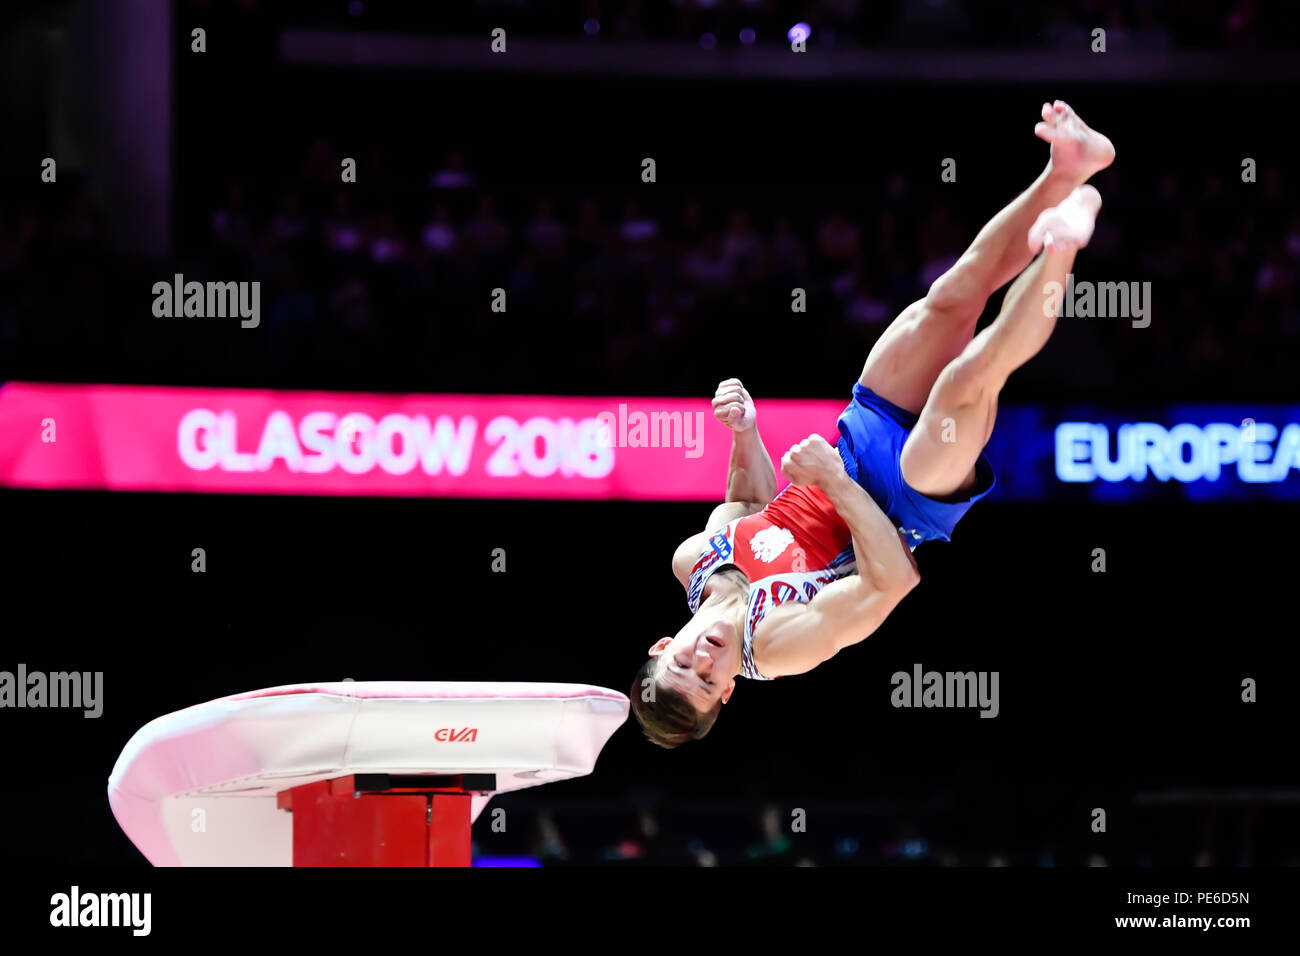 Glasgow, Scotland, UK. 12th August 2018. LANKIN Dmitrii (RUS) competes on the Vault in Men's Artistic Gymnastics Apparatus Finals during the European Championships Glasgow 2018 at The SSE Hydro on Sunday, 12  August 2018. GLASGOW SCOTLAND. Credit: Taka G Wu - Stock Image